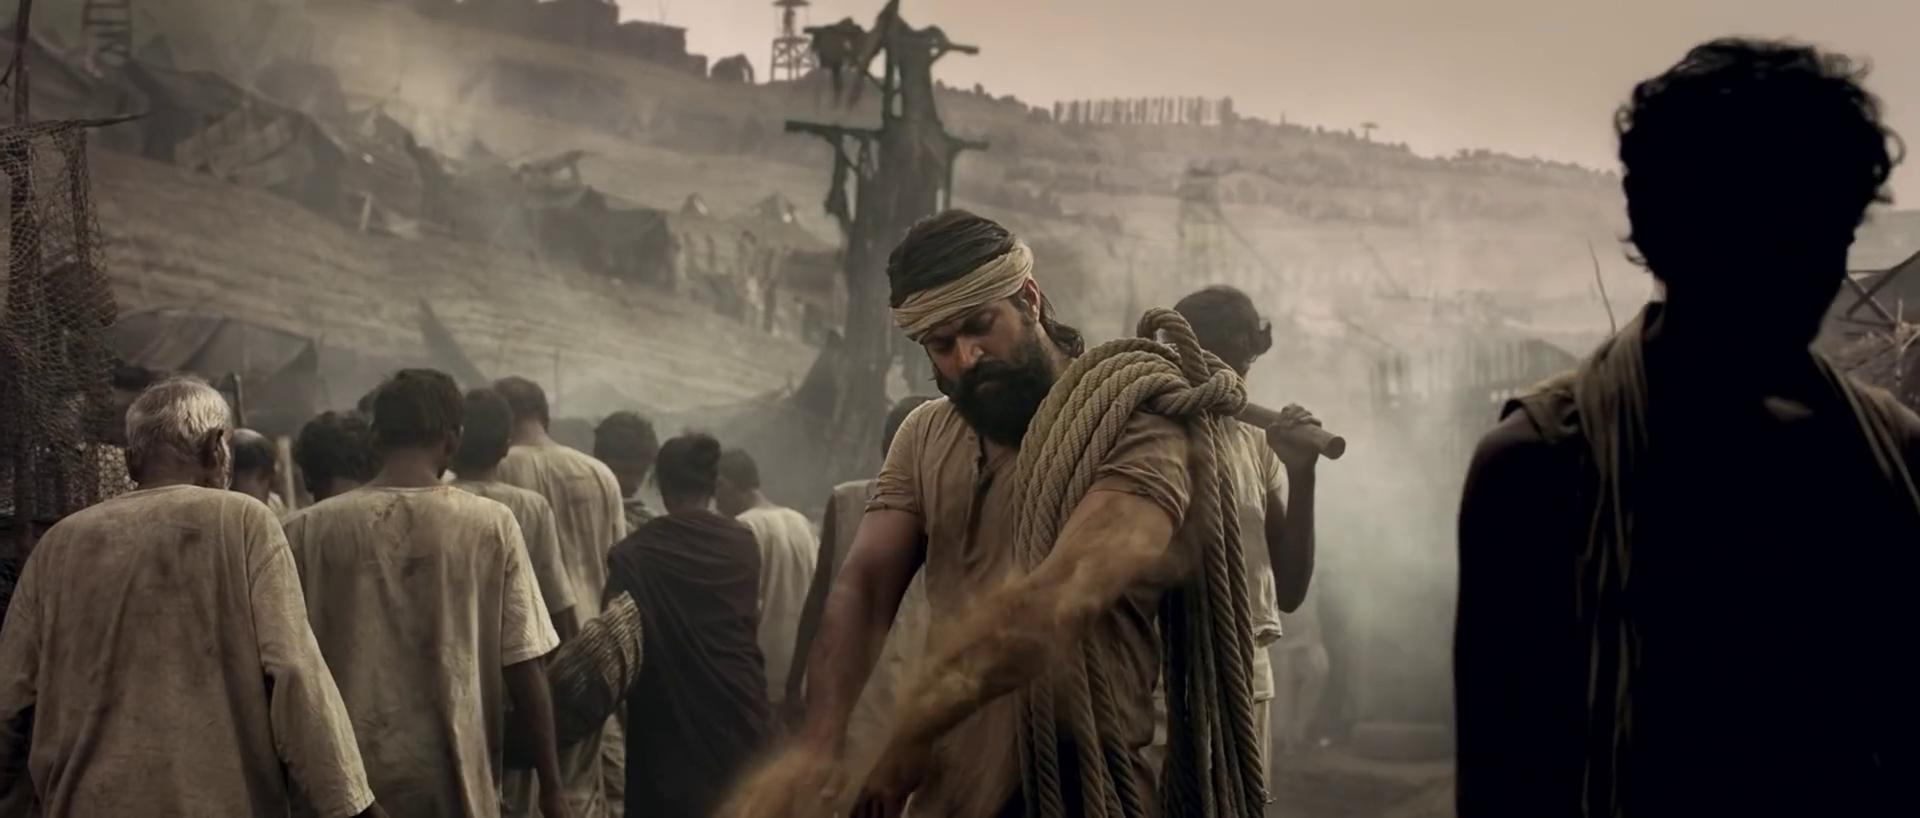 kgf mp3 songs download pagalworld